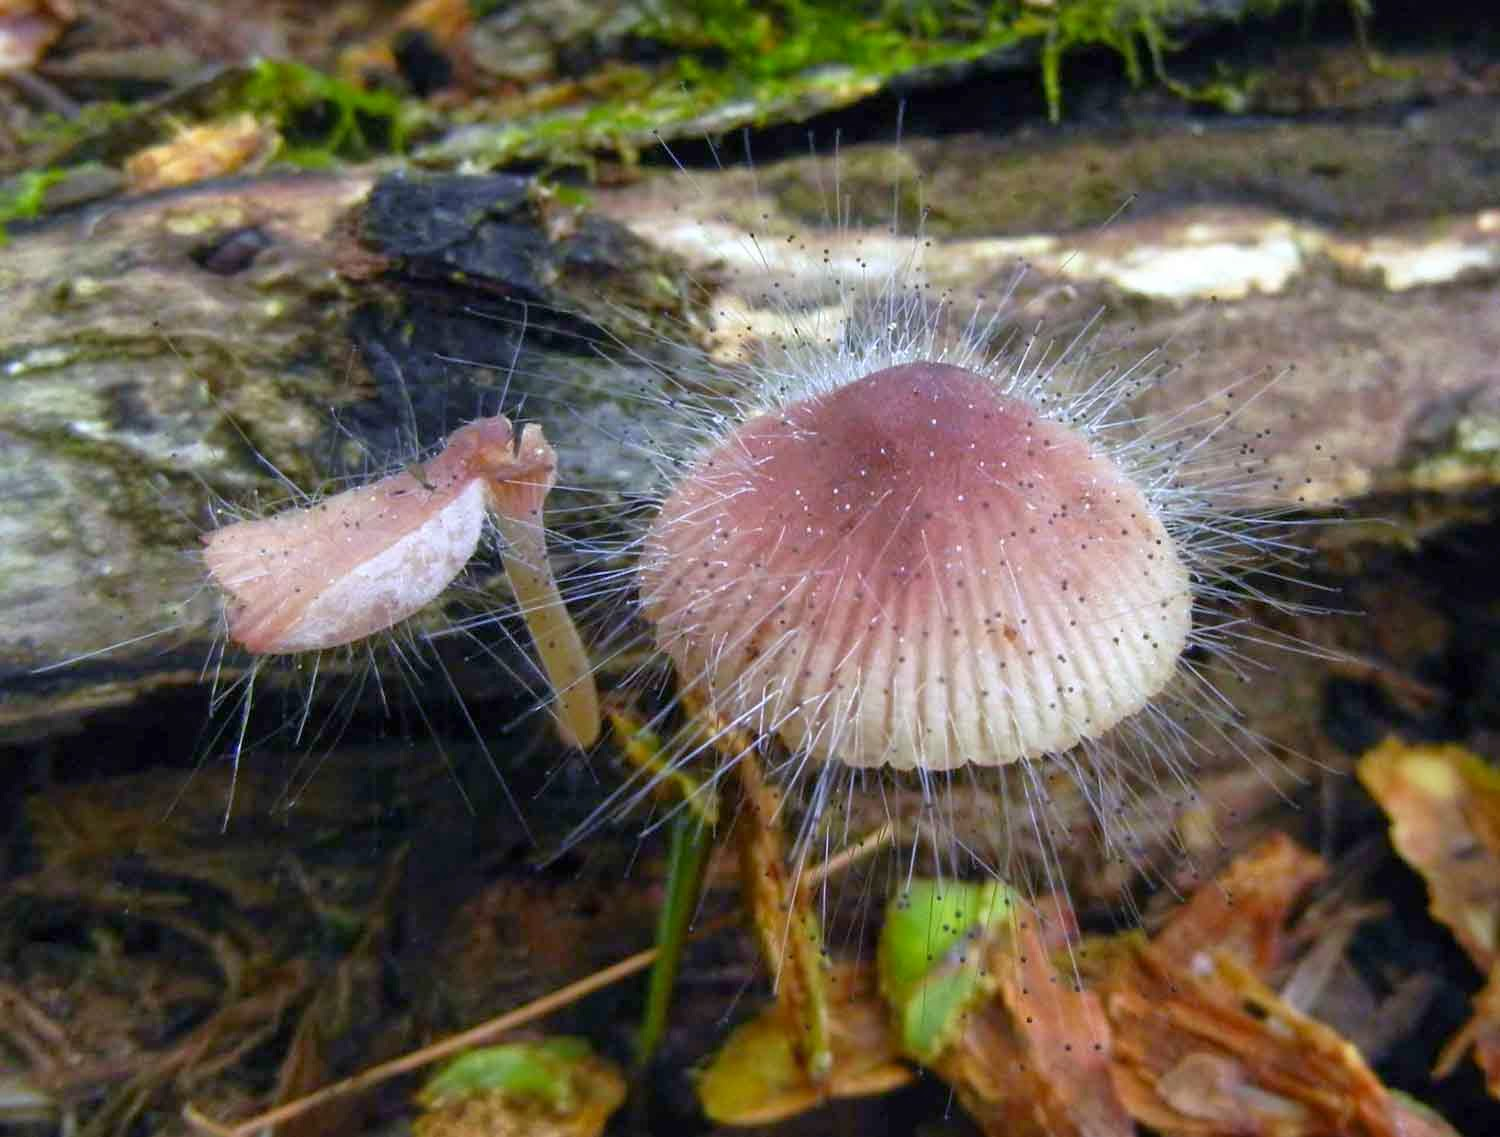 Mycena haematopus attacked by parasitic mold Spinellus fusiger